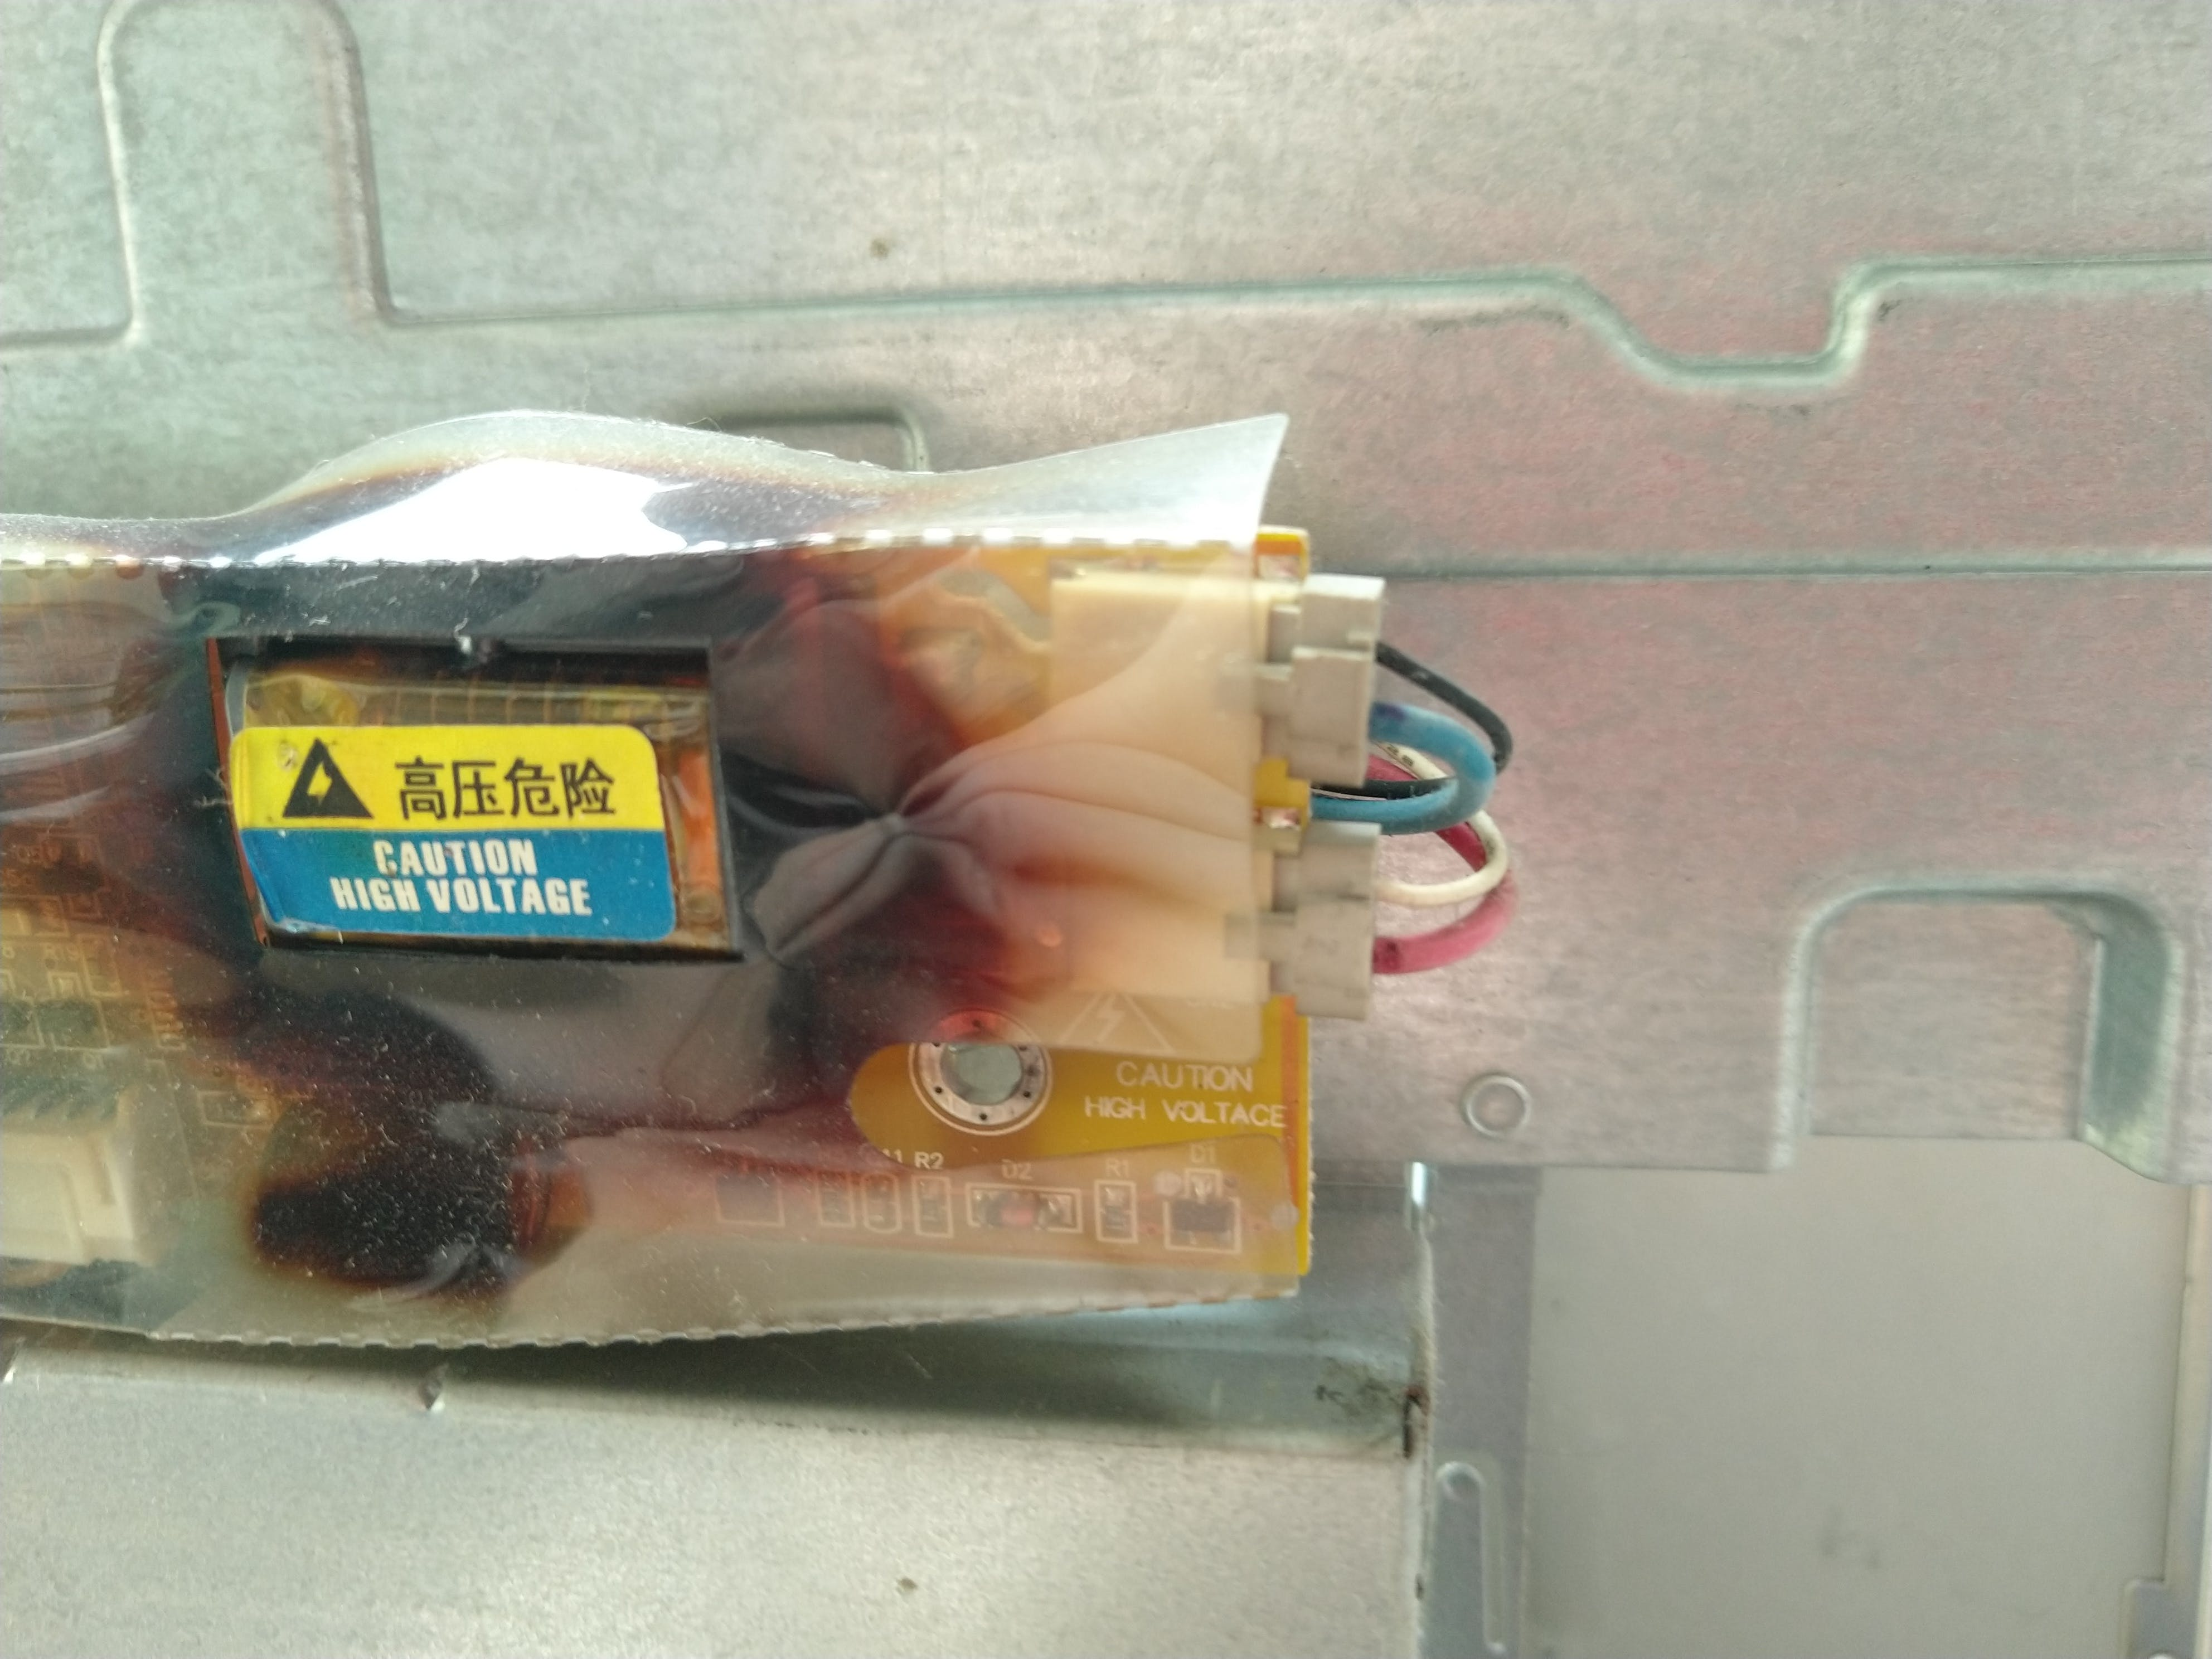 Seems our electronics can get a bit hot!